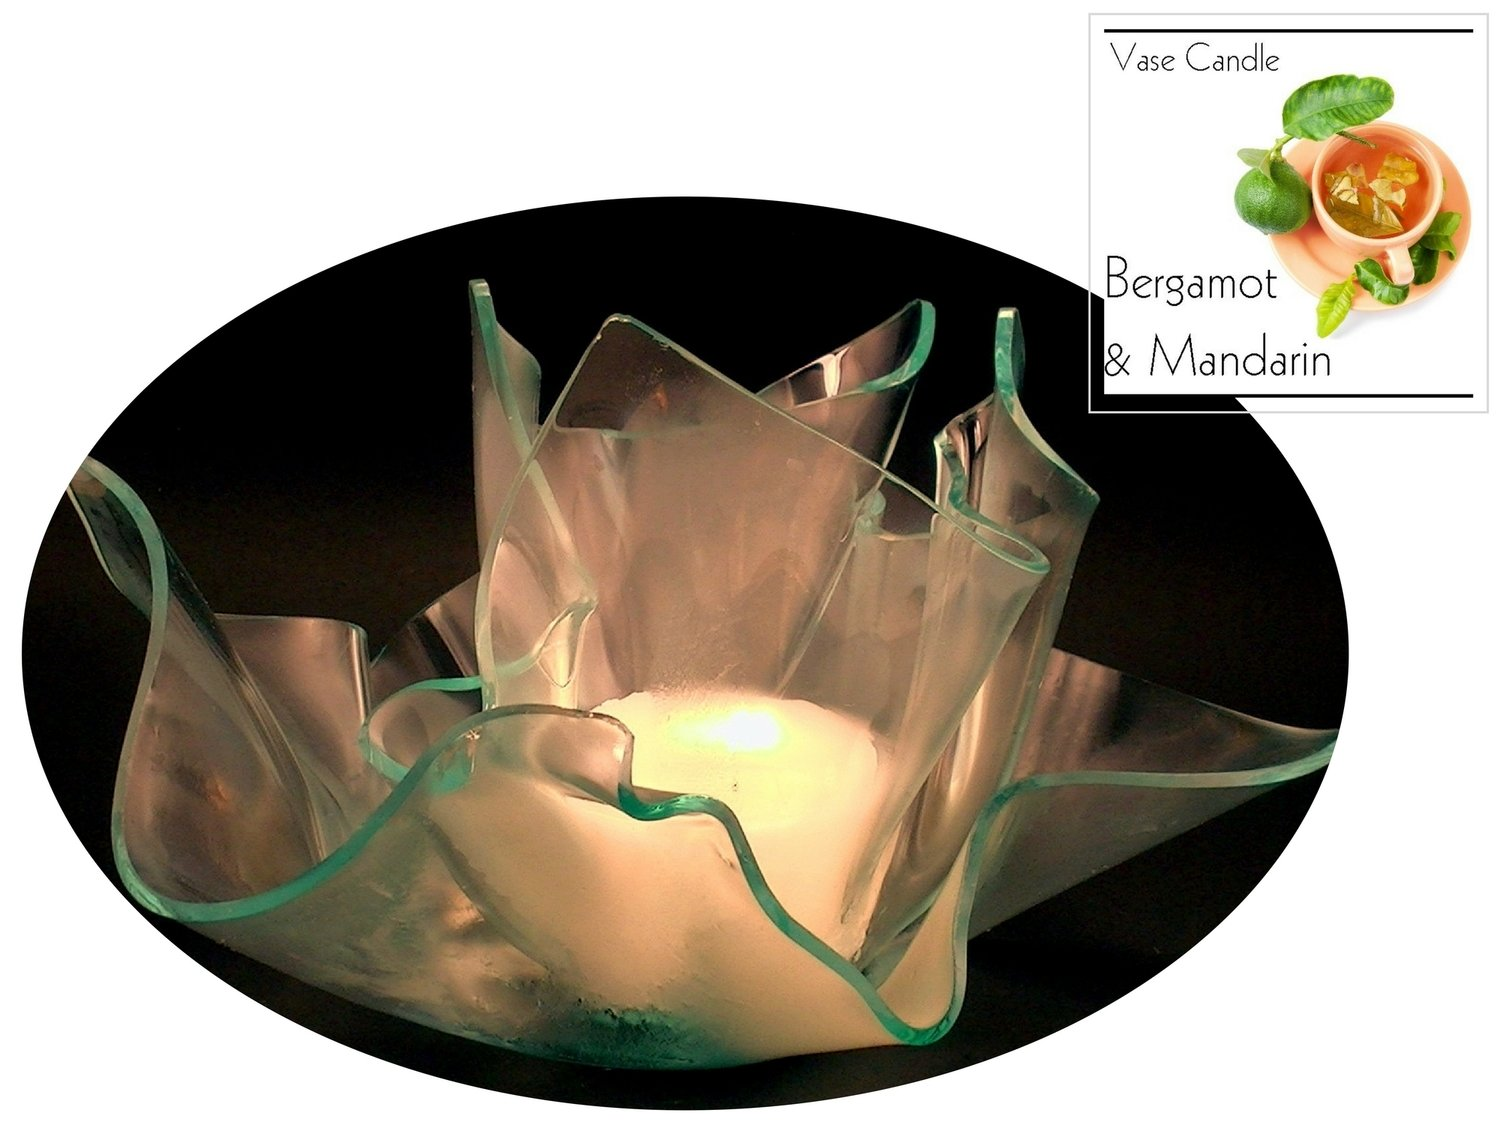 2 Bergamot and Mandarin Candle Refills | Clear Satin Vase & Dish Set